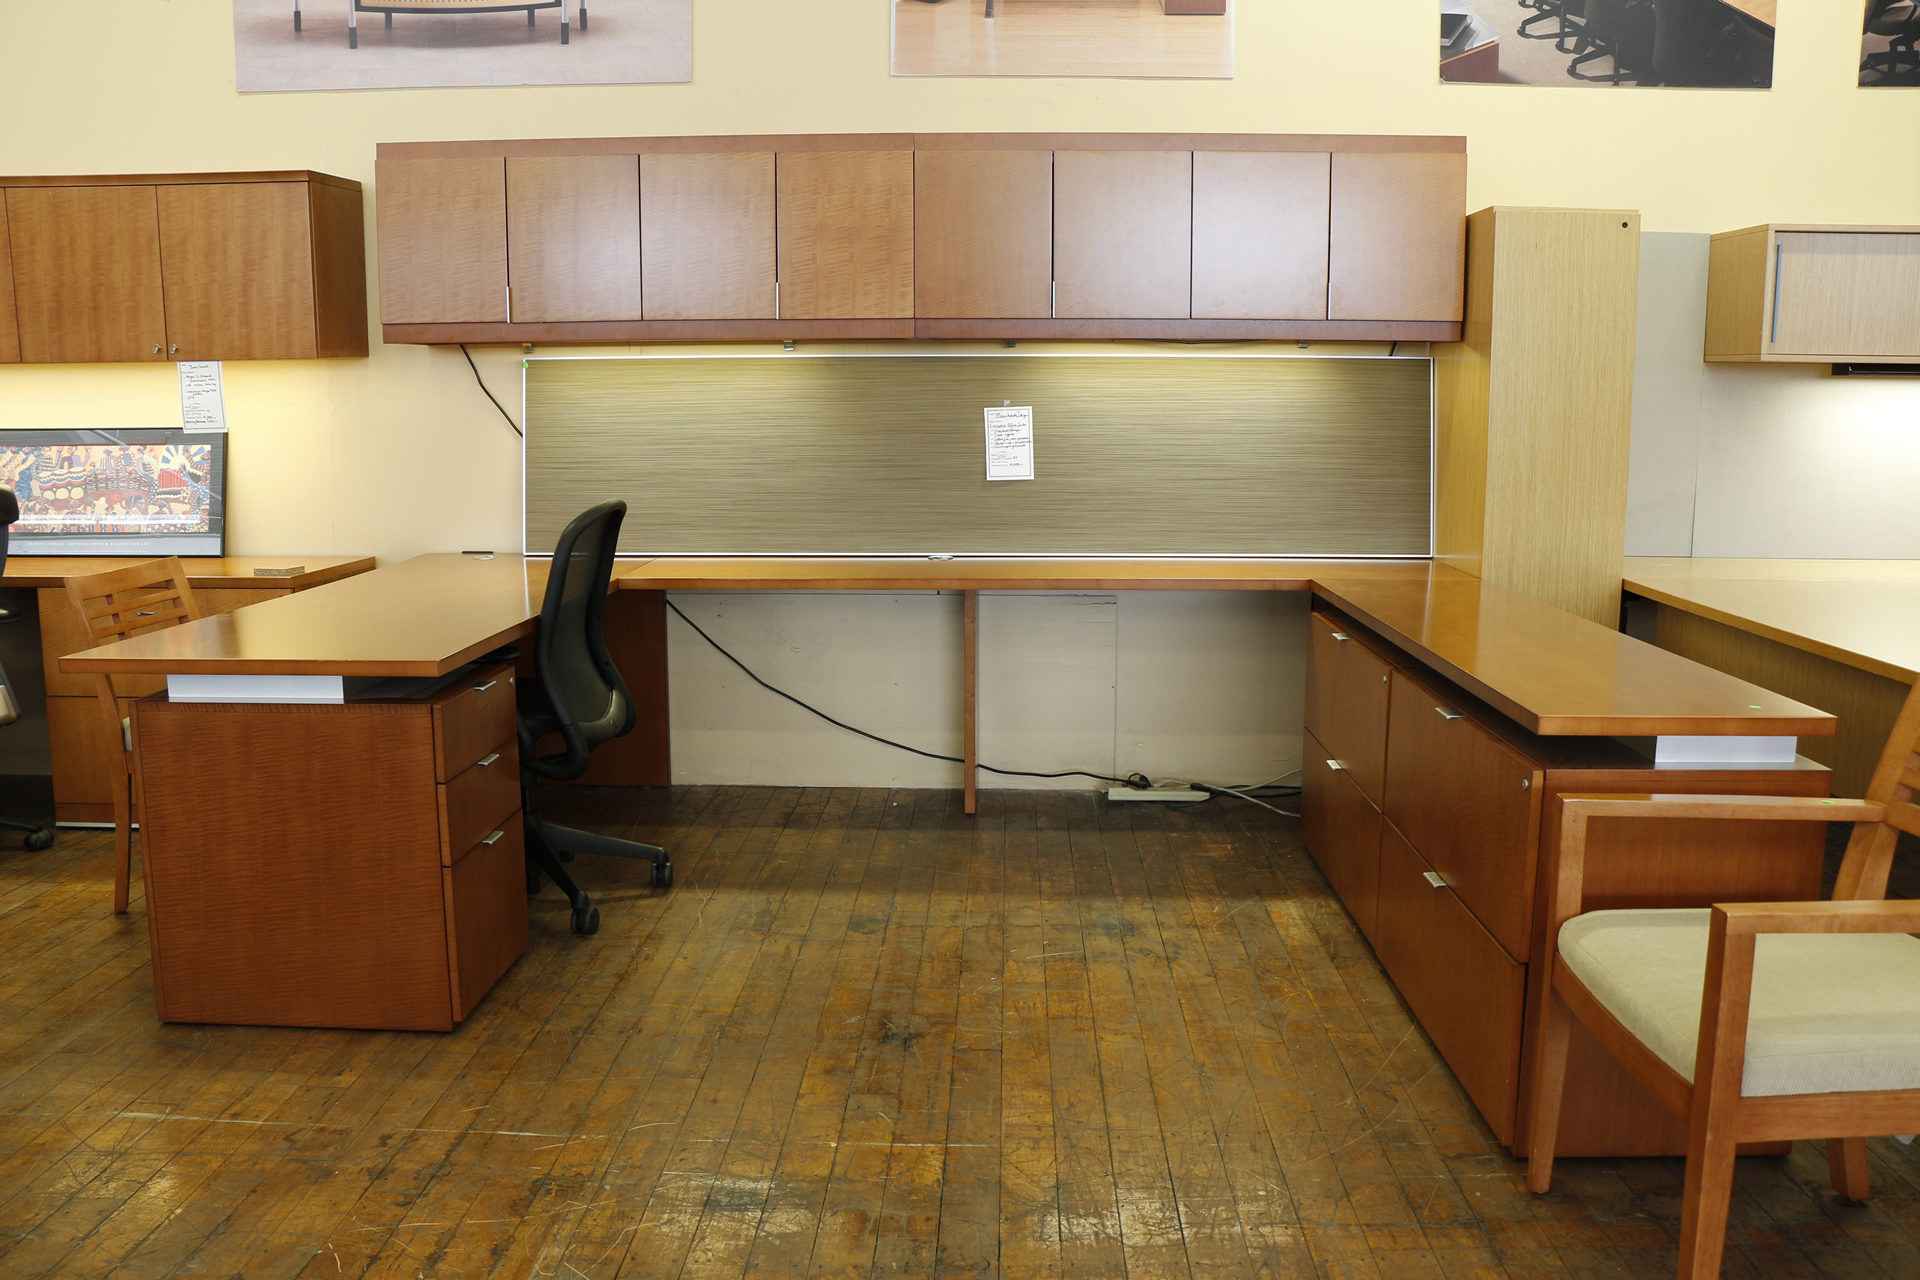 peartreeofficefurniture_peartreeofficefurniture_mg_4174.jpg